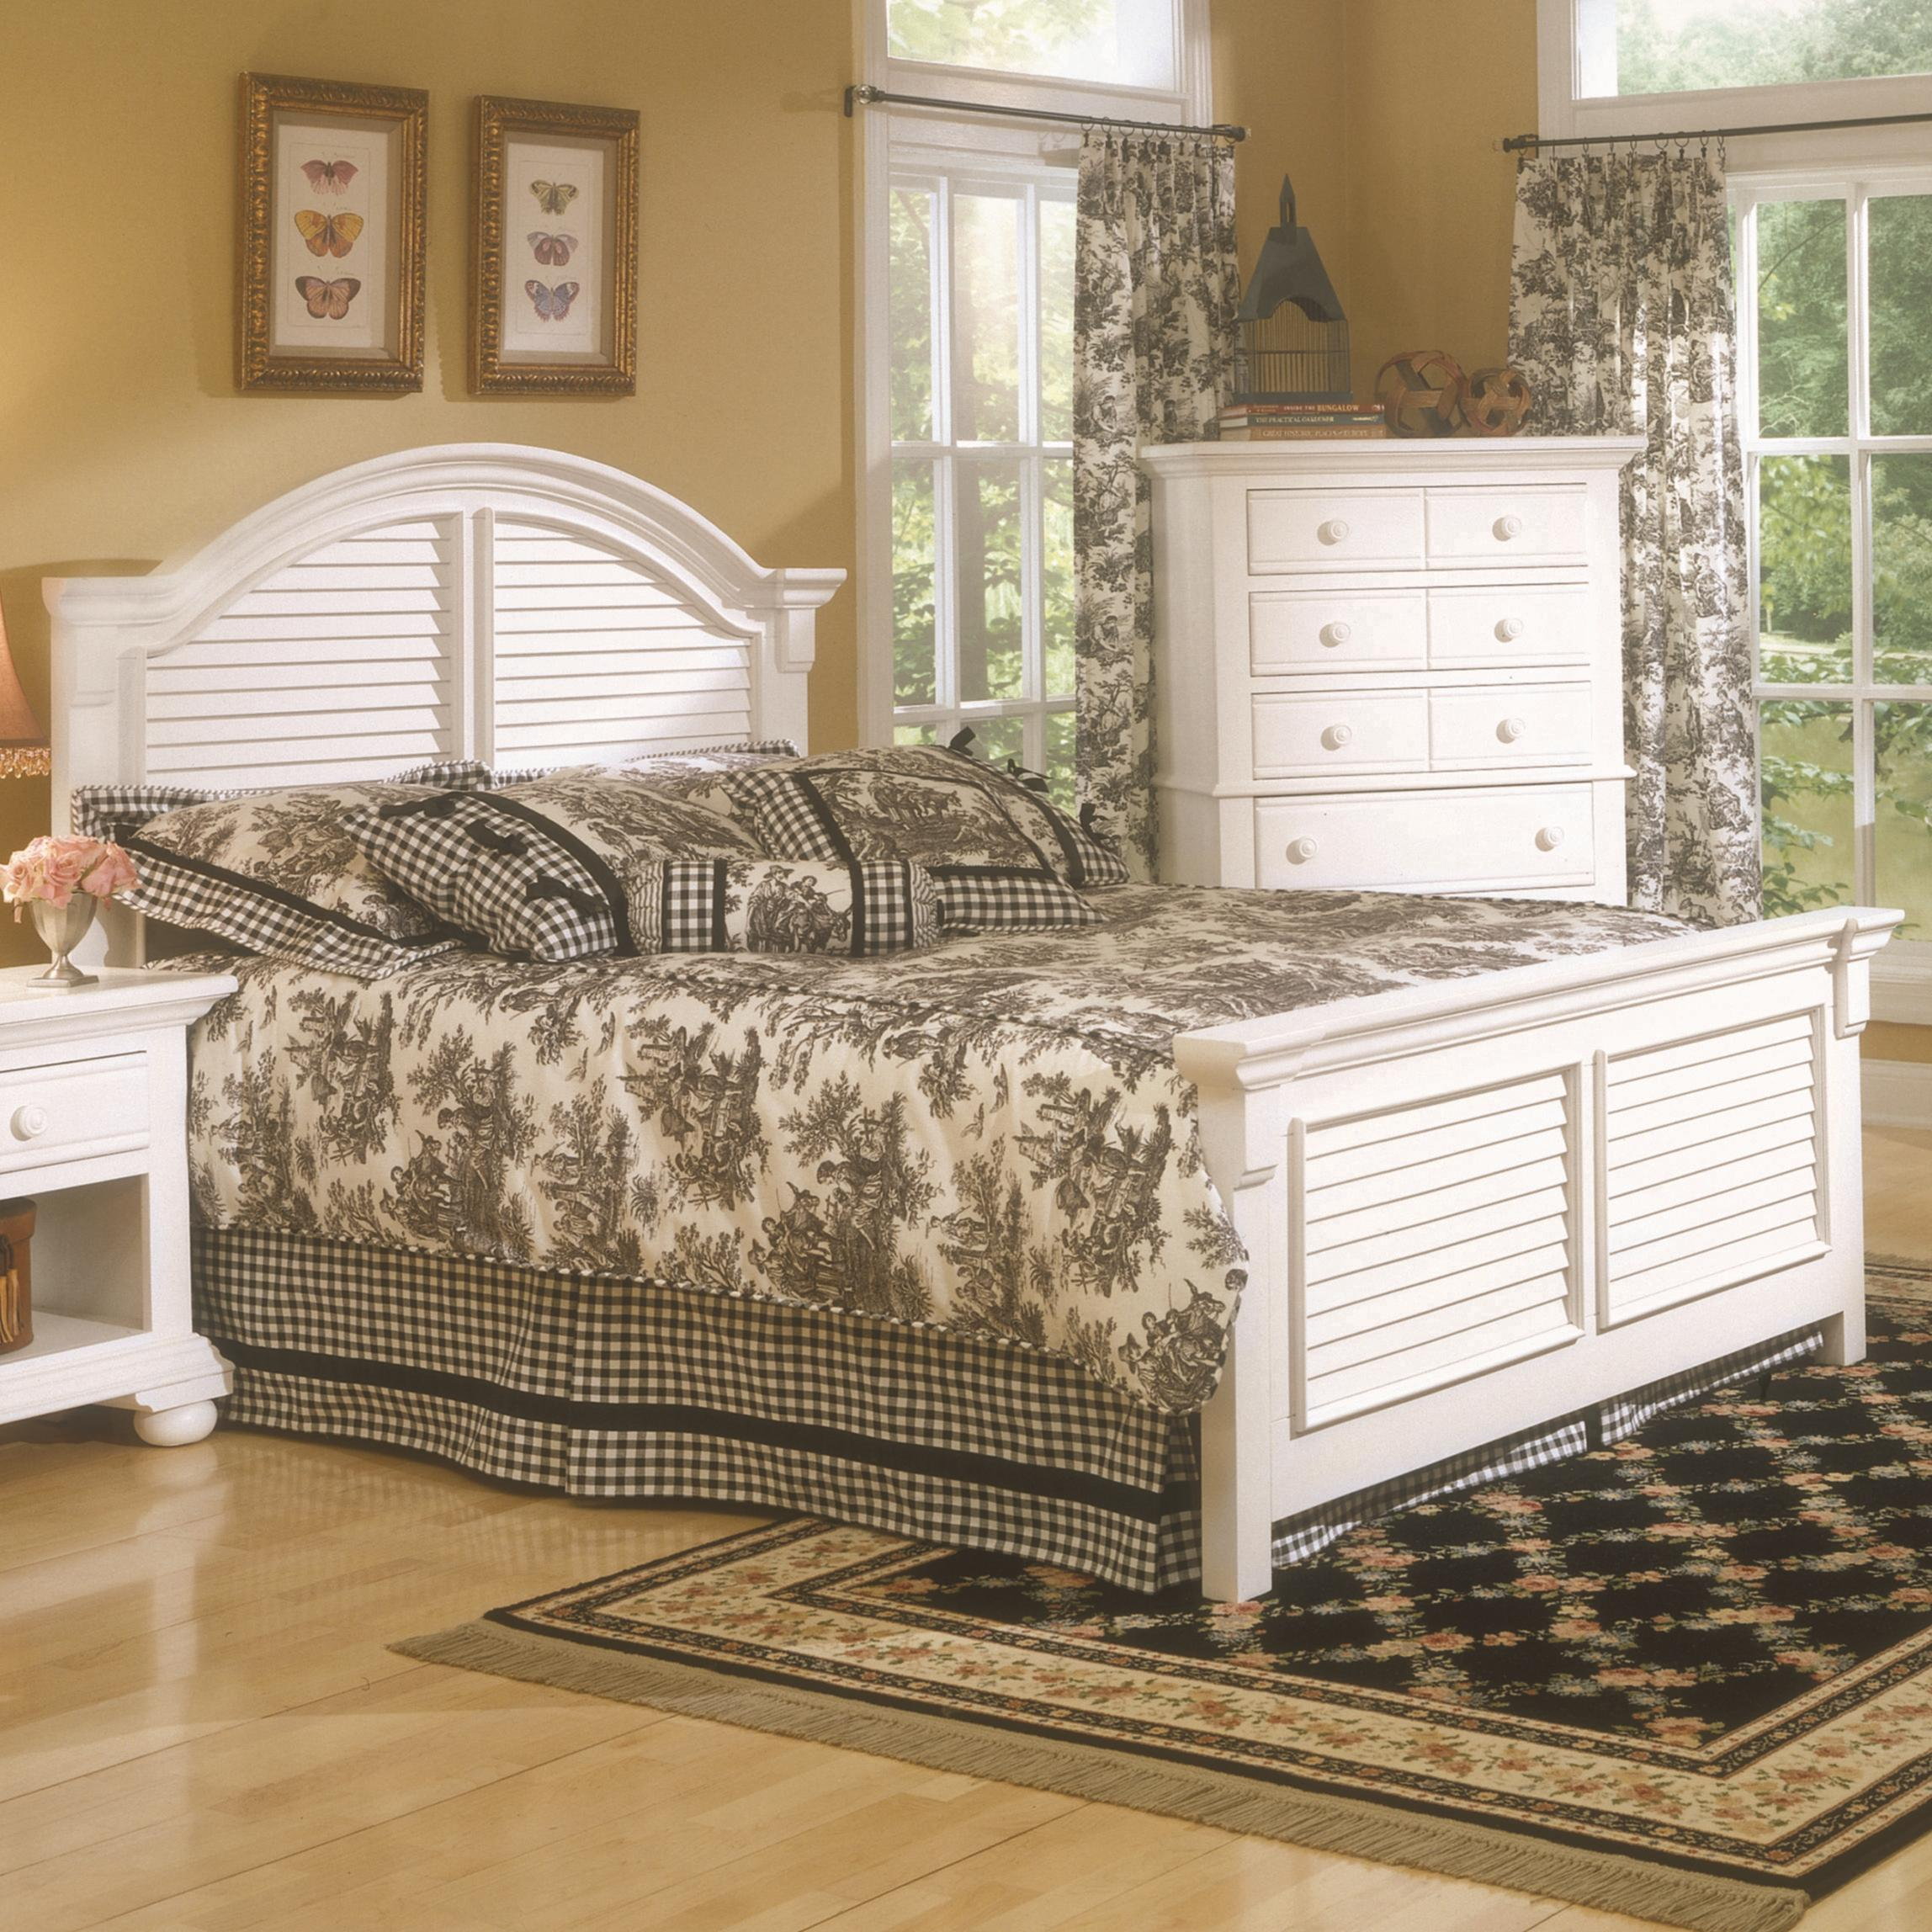 Cottage Traditions King Panel Bed by American Woodcrafters at Furniture Fair - North Carolina